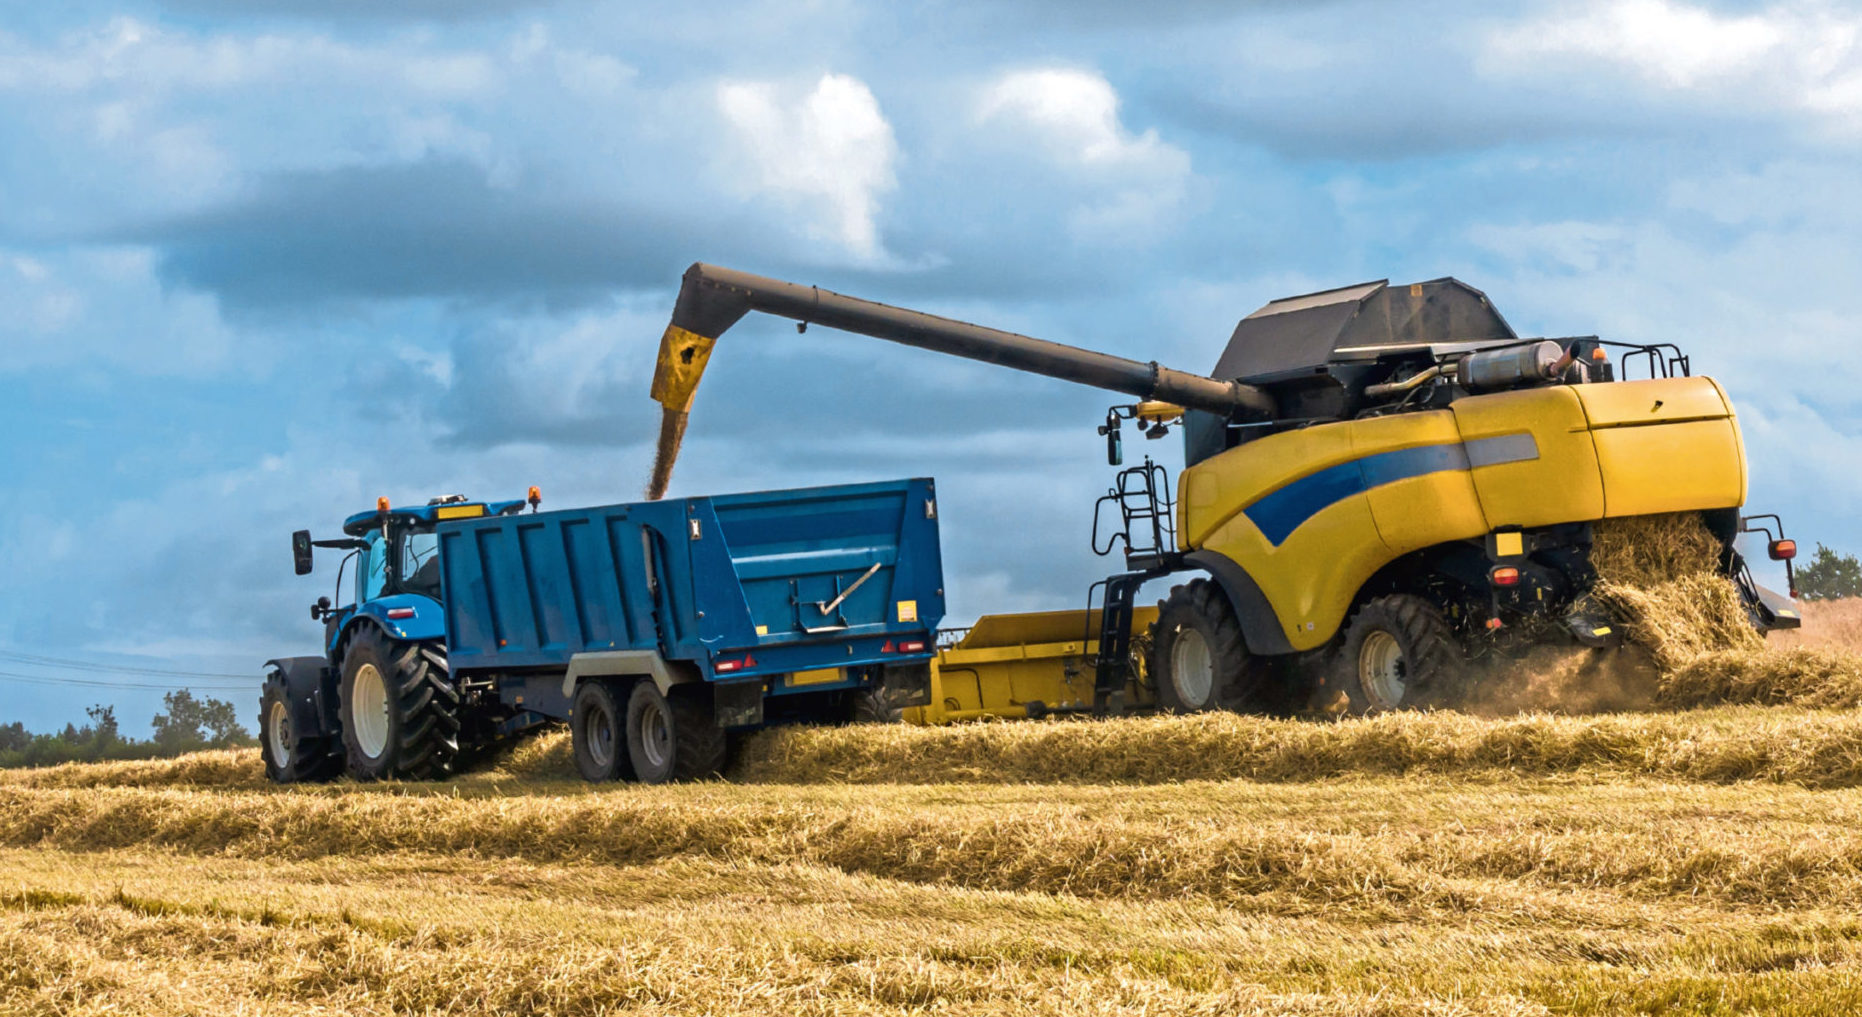 Combines are having to dodge the unsettled weather this harvest season.